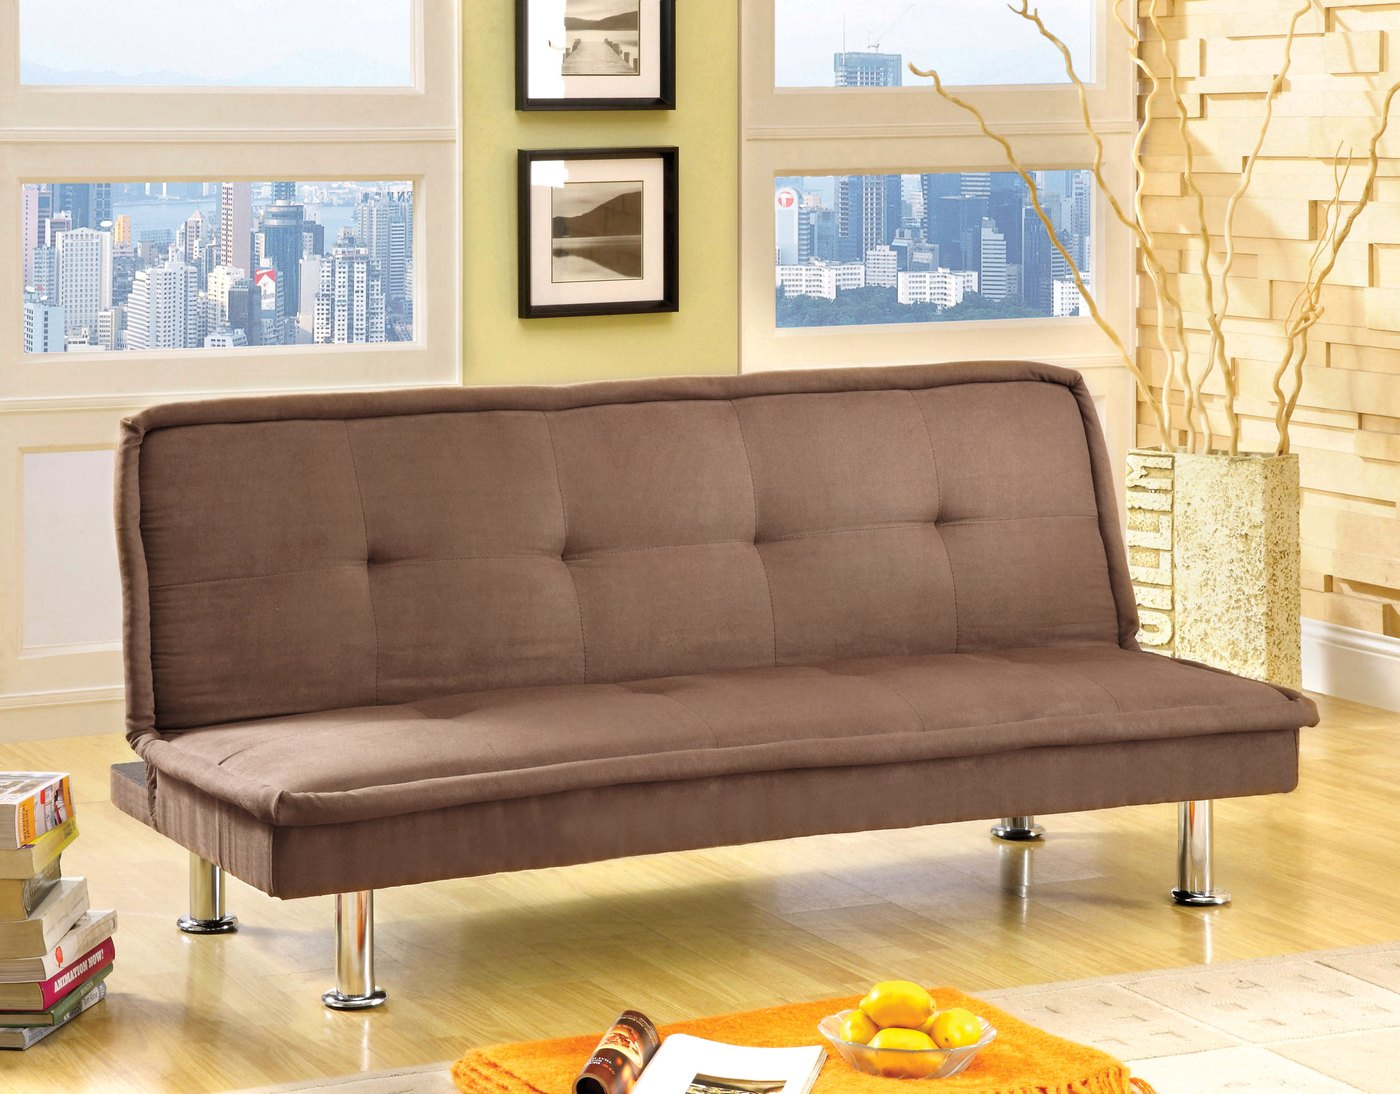 Beach Front I Contemporary Mocha Futon Sofabed With